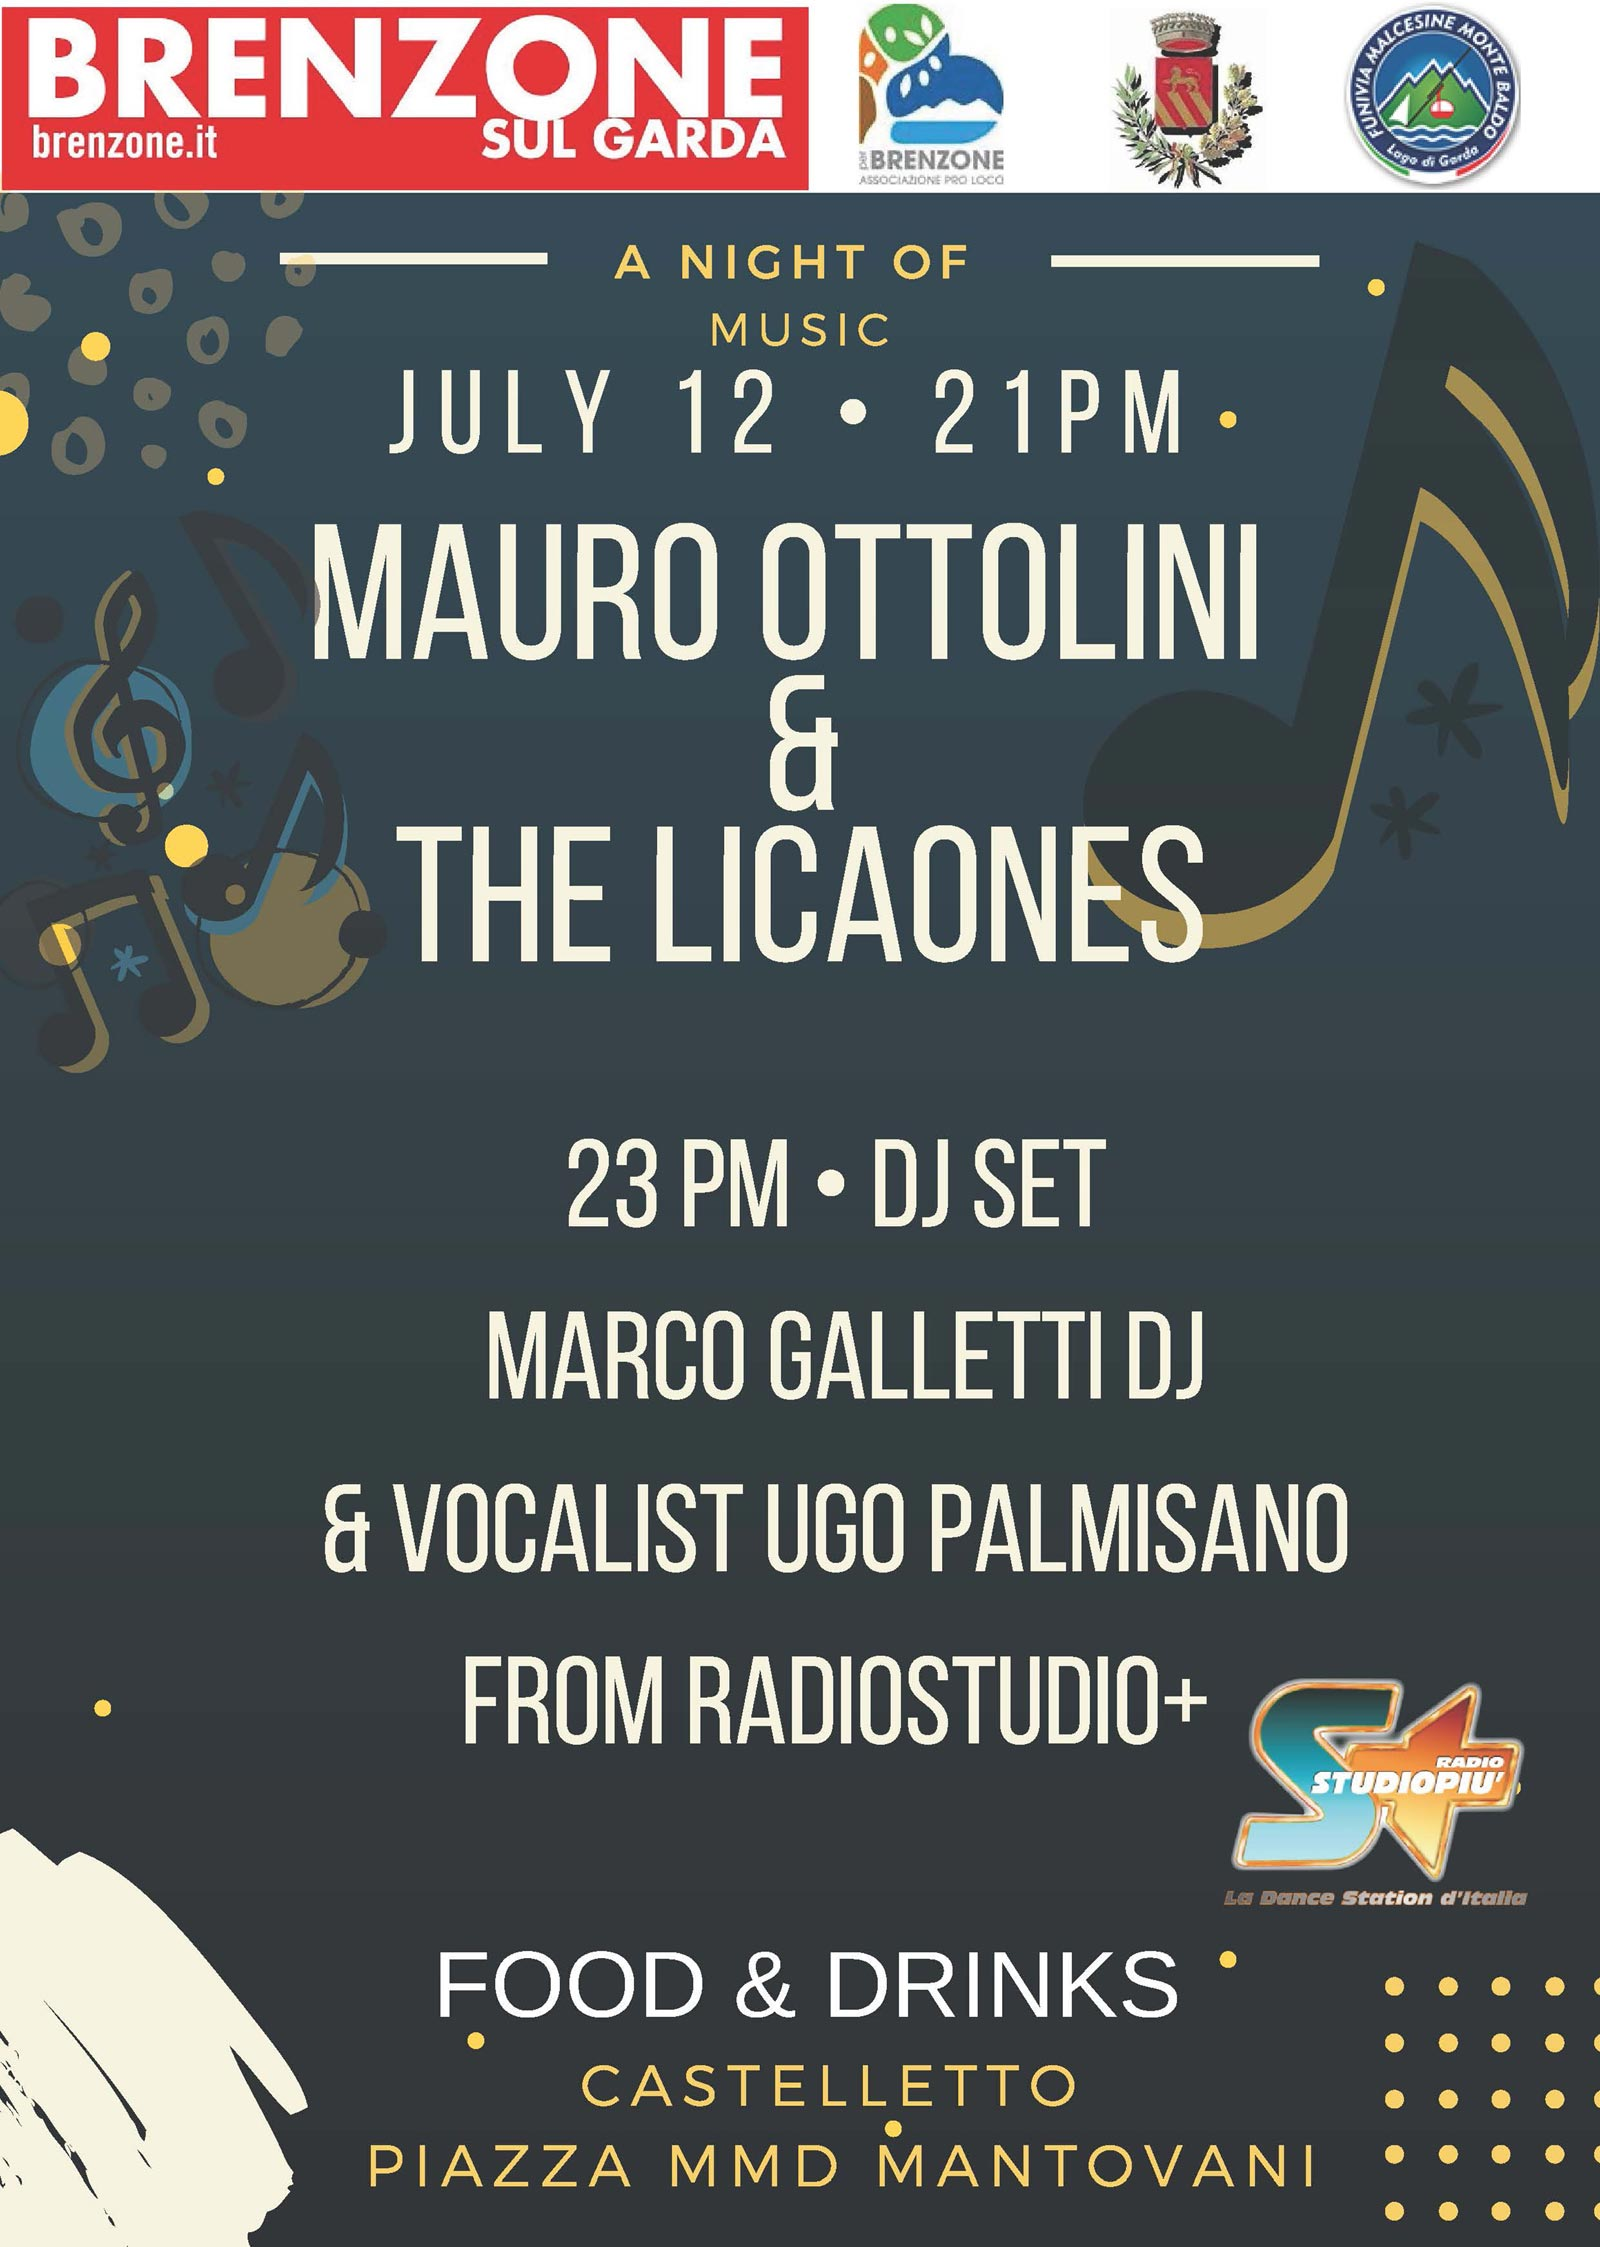 A night of misic with Mauro Ottolini on 12.07.2018